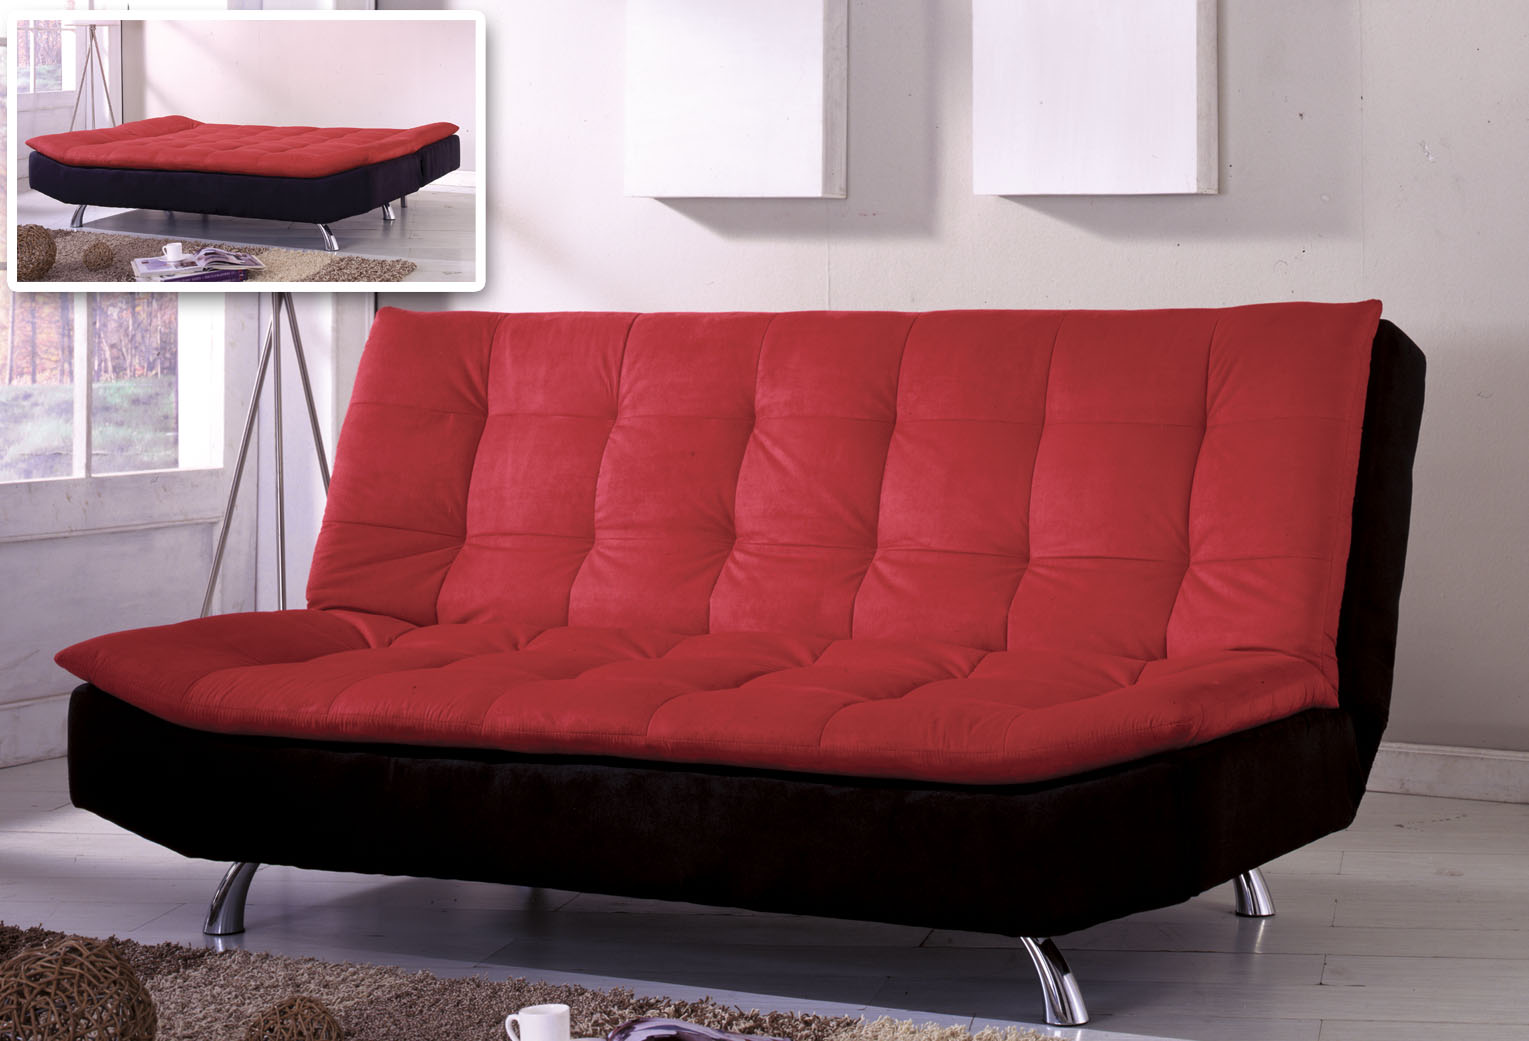 Futon Beds IKEA Frame and Bed Cover Designs